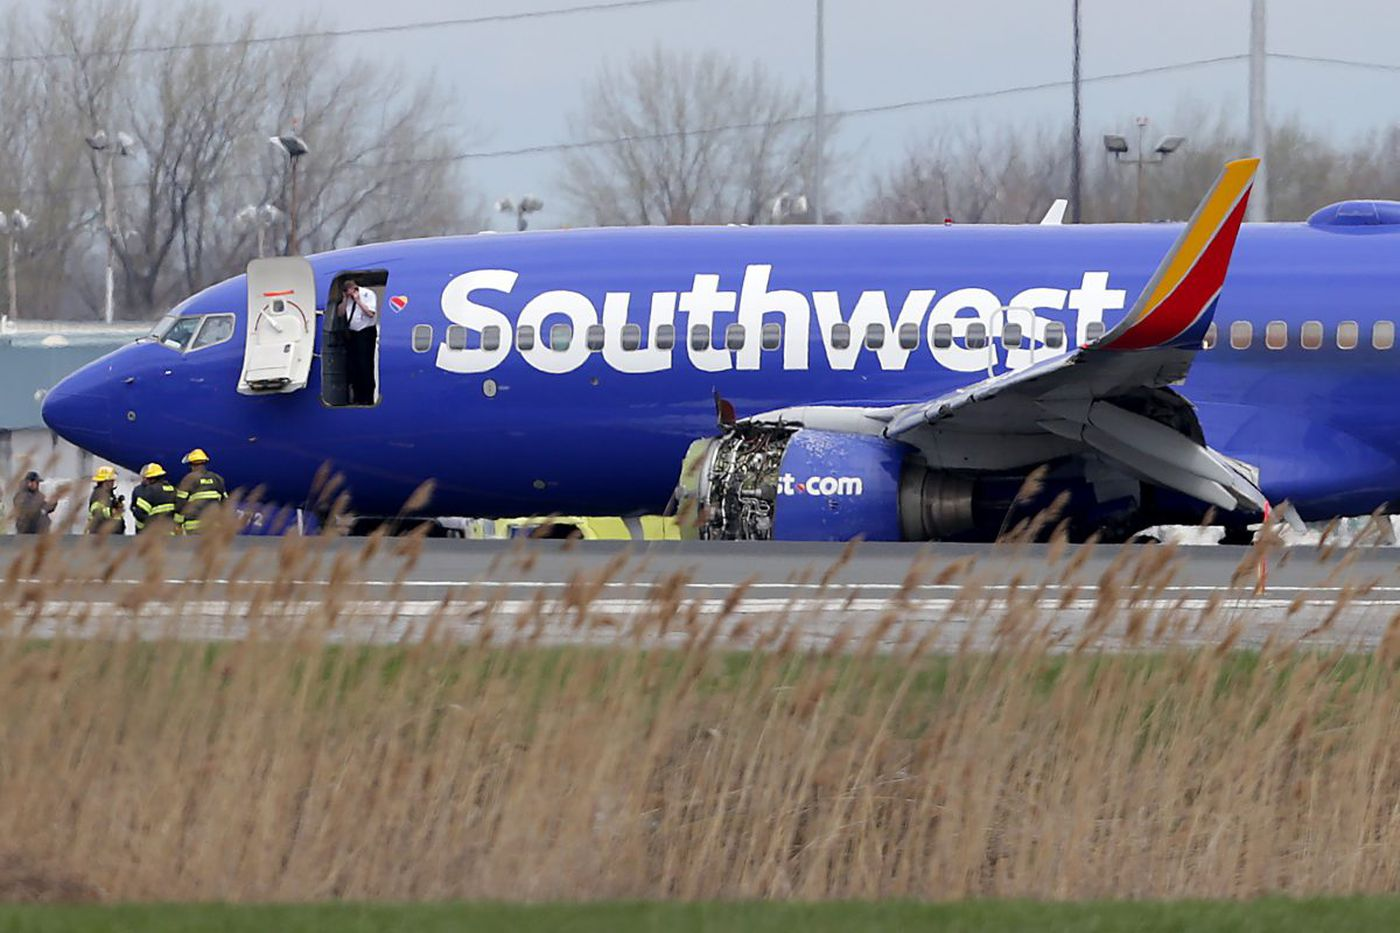 Passengers describe Southwest plane's emergency landing in Philadelphia after engine explosion